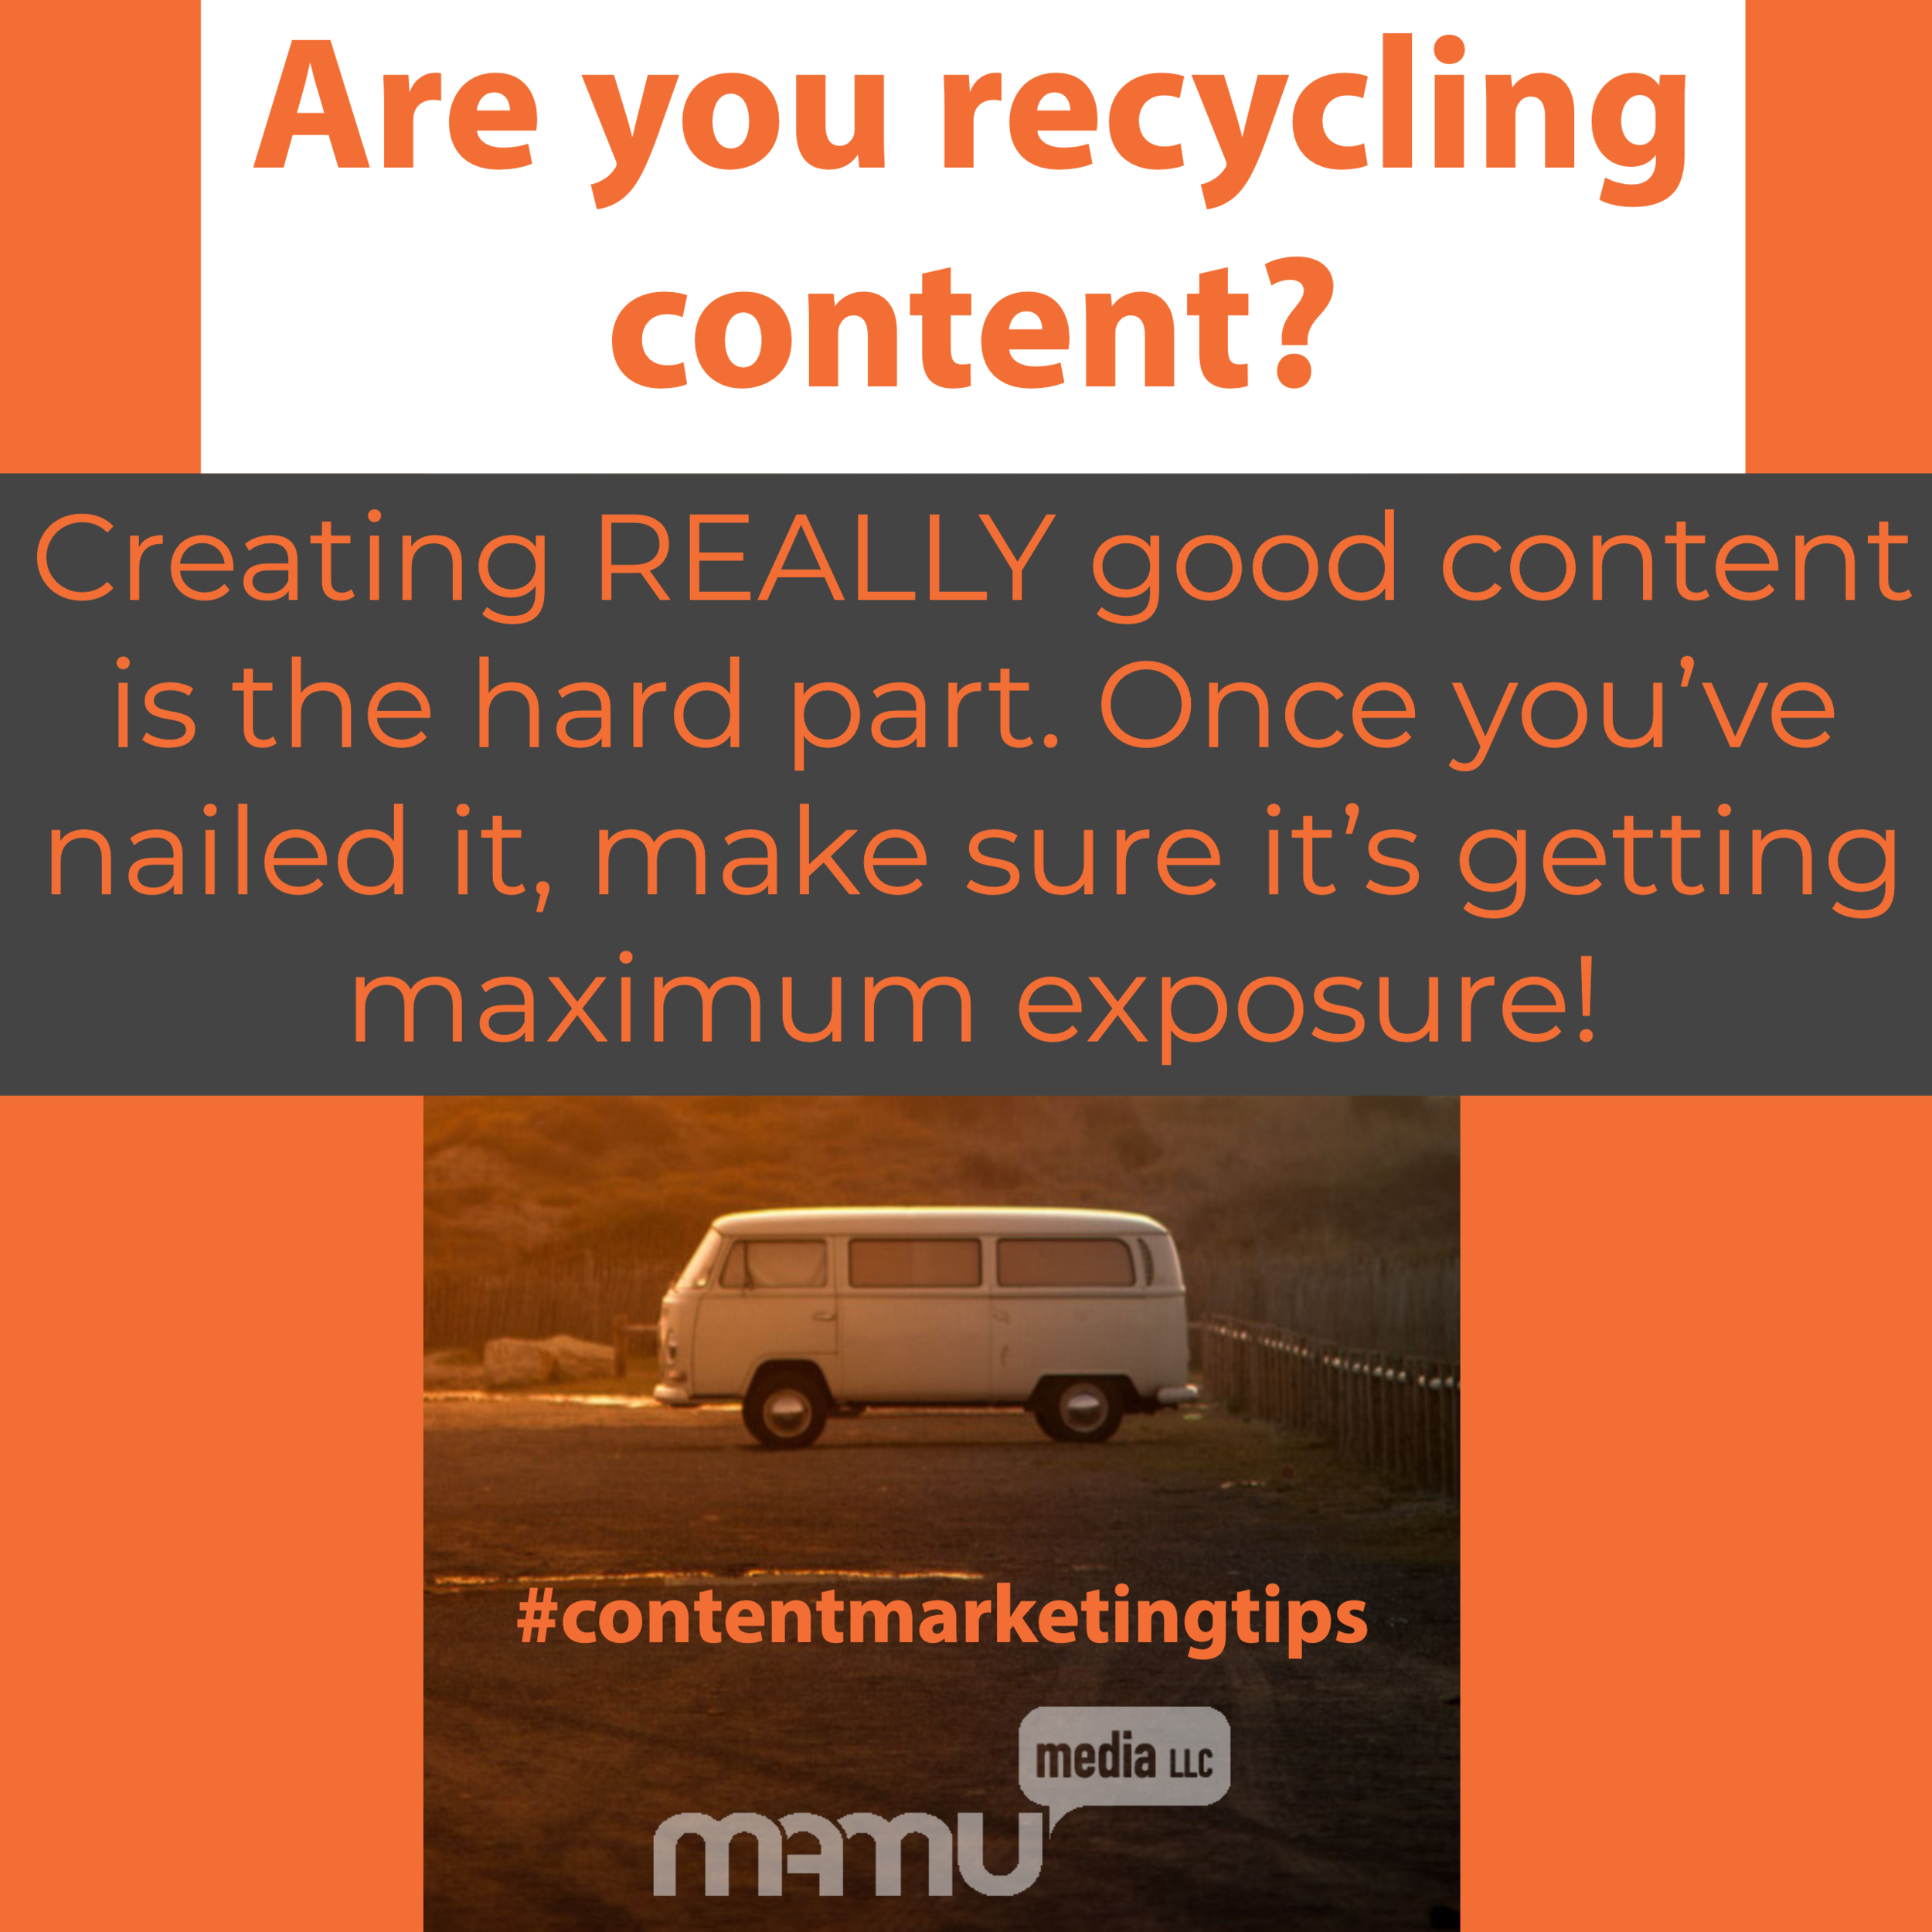 Content Marketing Tip 2